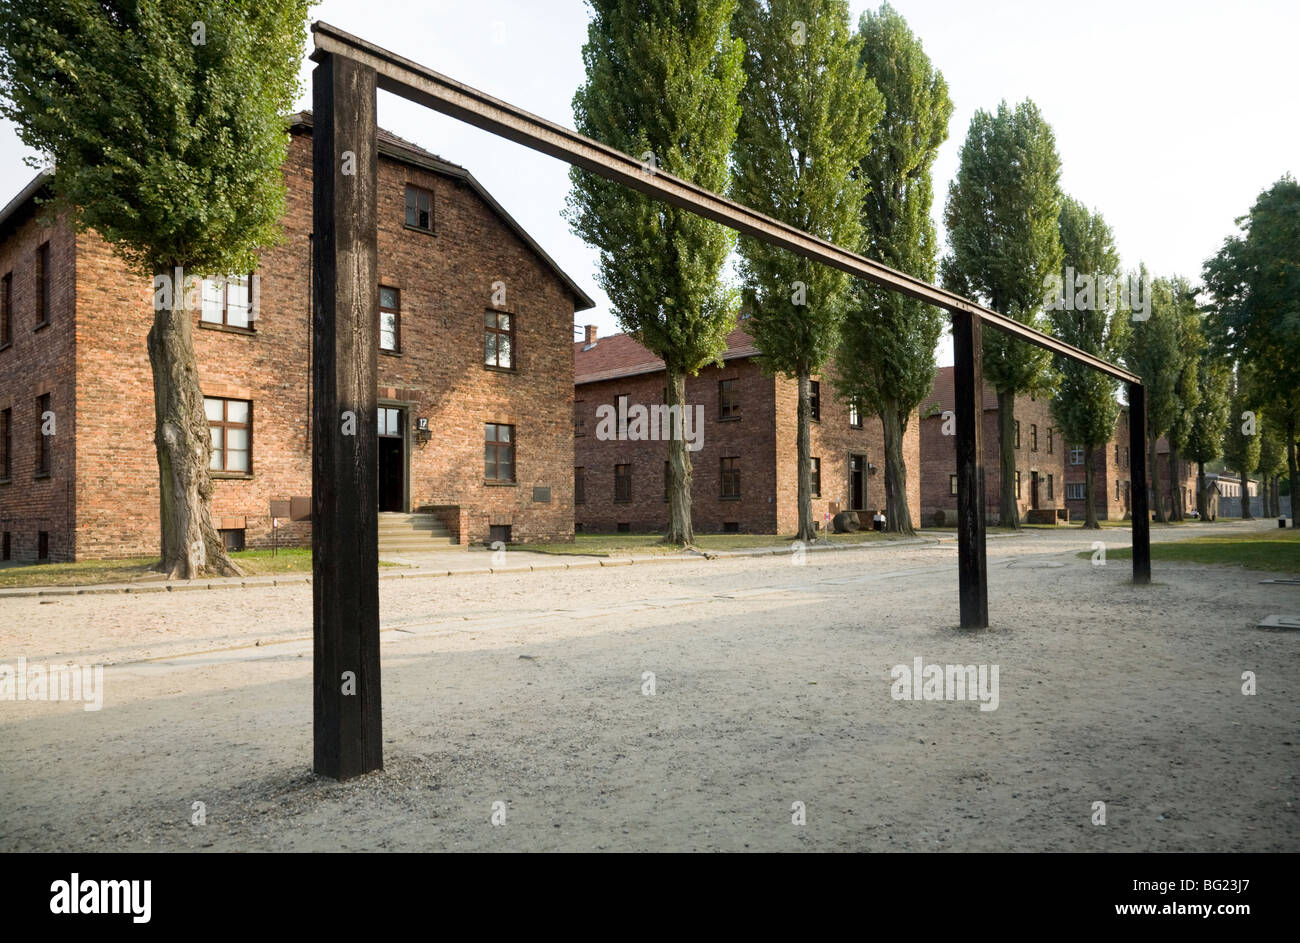 The gallows rail where prisoners were hanged / hung by the SS. Auschwitz camp. Poland. - Stock Image